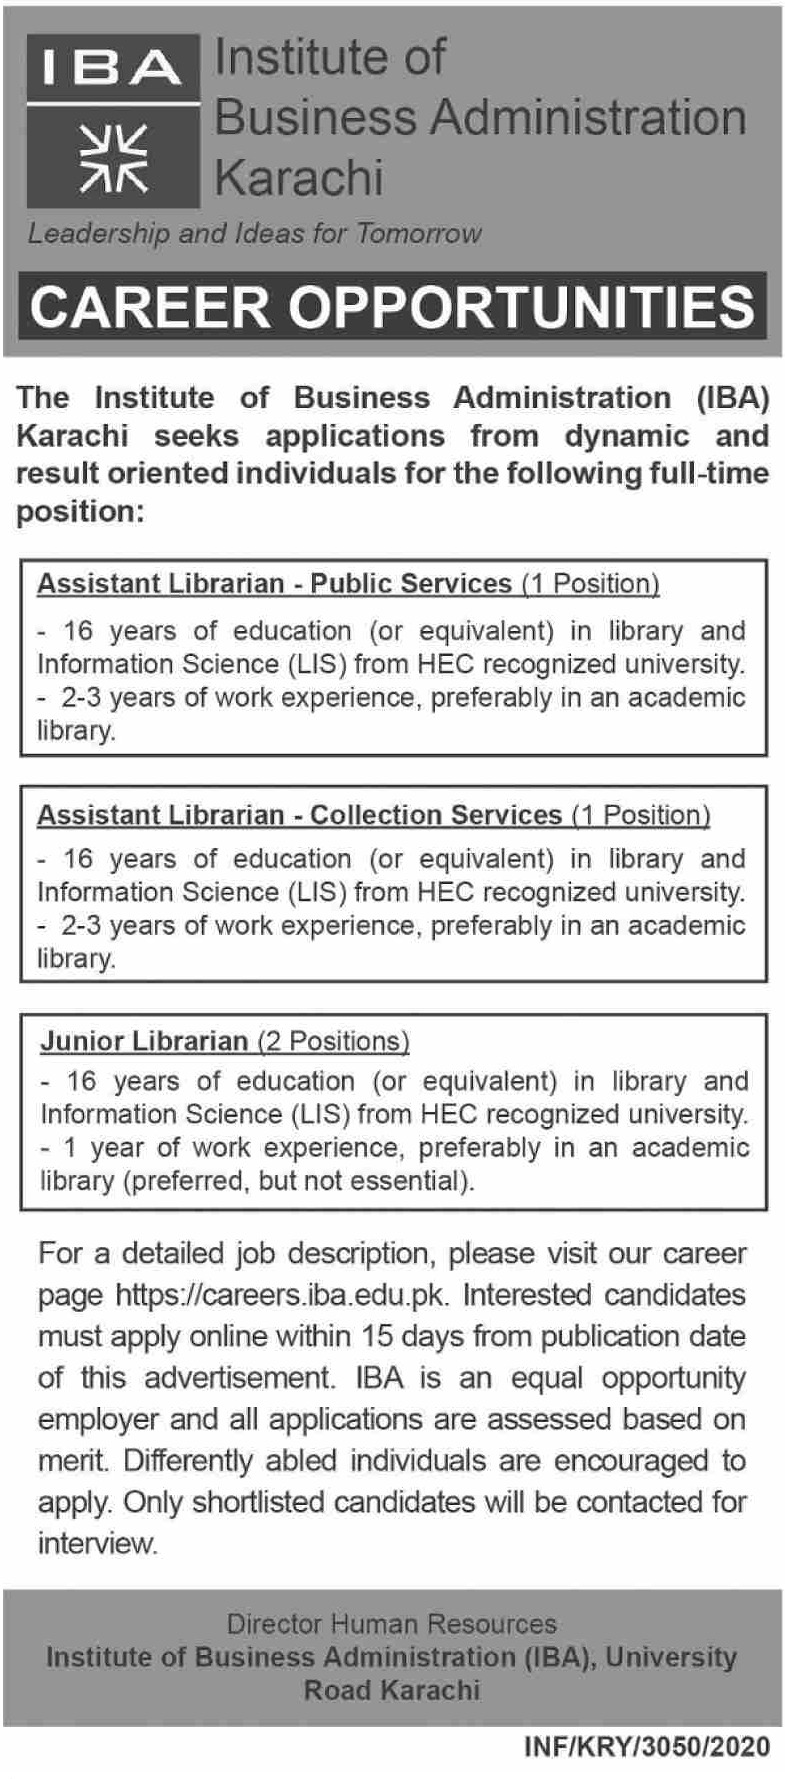 IBA Karachi Jobs November 2020 Institute of Business Administration